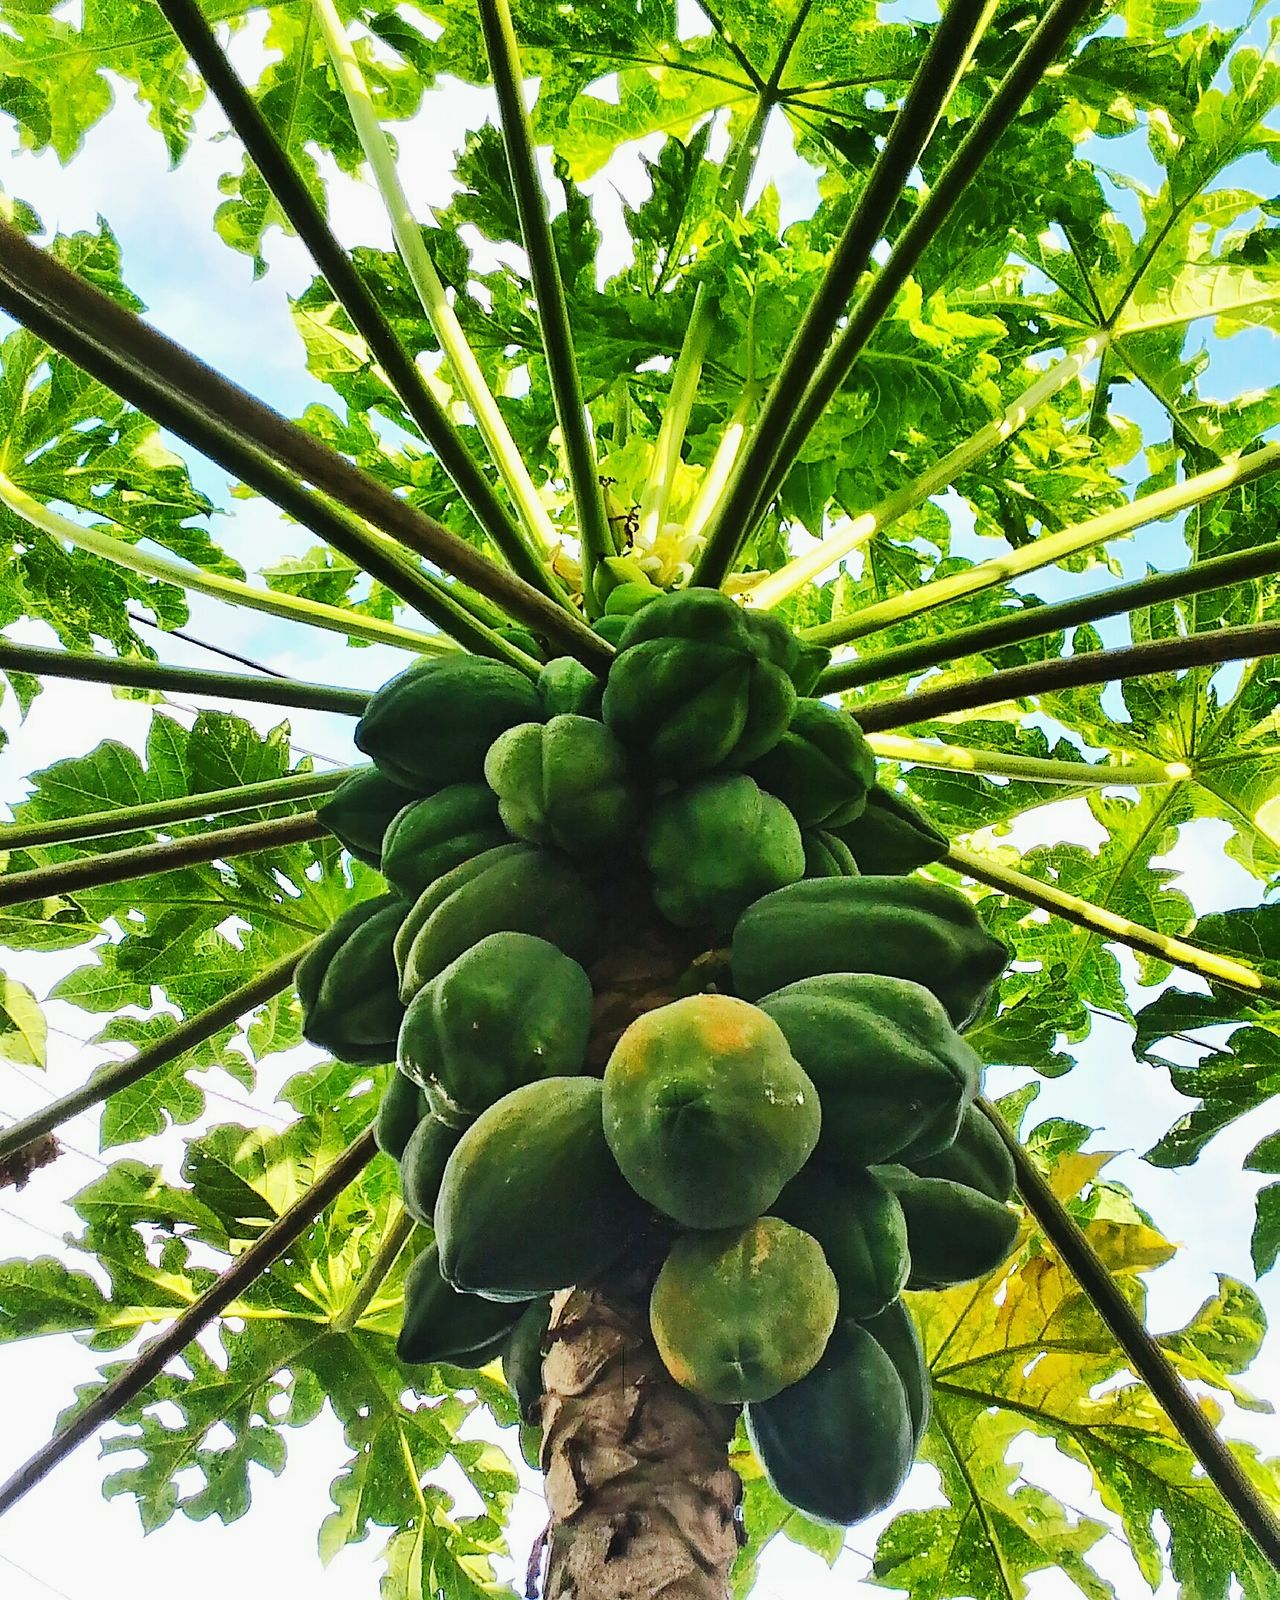 Papaya fruits Fruit Green Color Nature Low Angle View Growth Freshness Beauty In Nature No People Papaya Leaf Papaya Fruit Papaya_tree Papaya Papaya Leaves Green Green Green Green!  Green Plant Greenery Naturelovers Nature_perfection Nature Nature Is Art Plant Plantporn Fruitporn Fruits ♡